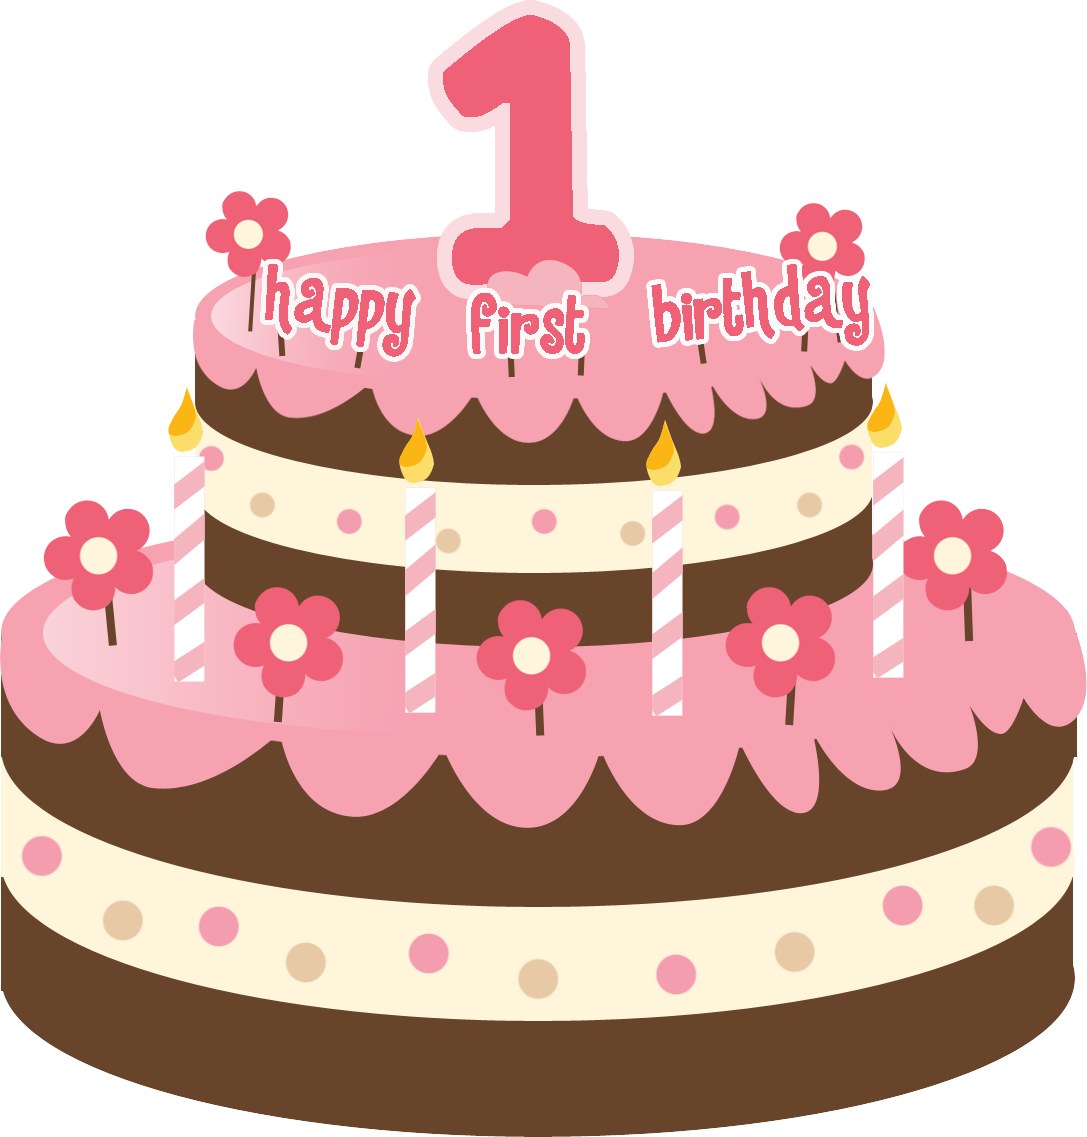 1st birthday cake clipart. One year clipartfest birthdaycakeclipart